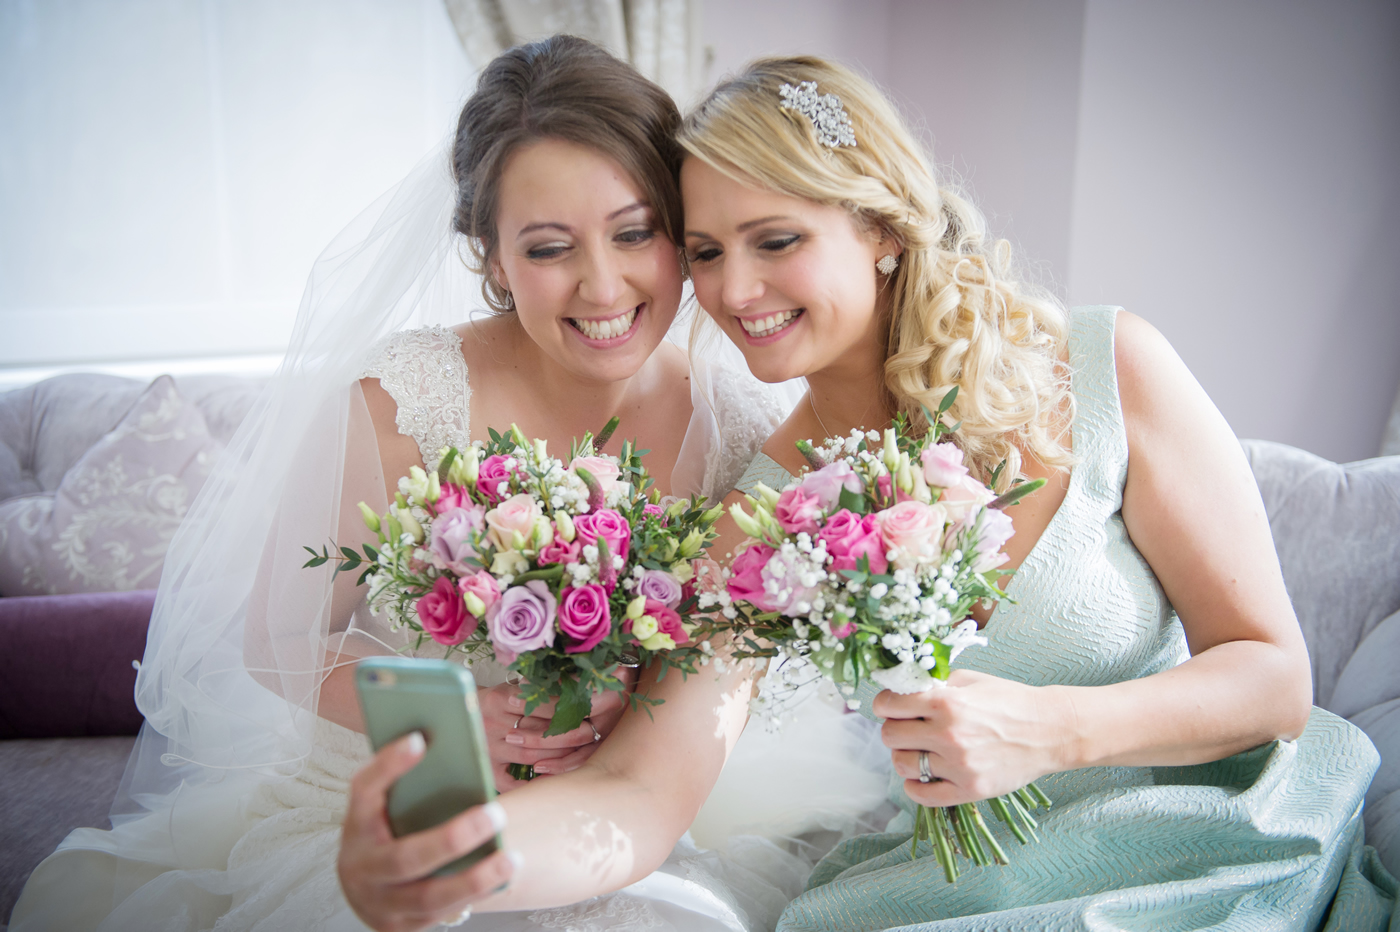 Wedding Hair & Makeup For Brides, Bridesmaids & Mothers - Burnham Beeches Hotel near Slough & Windsor